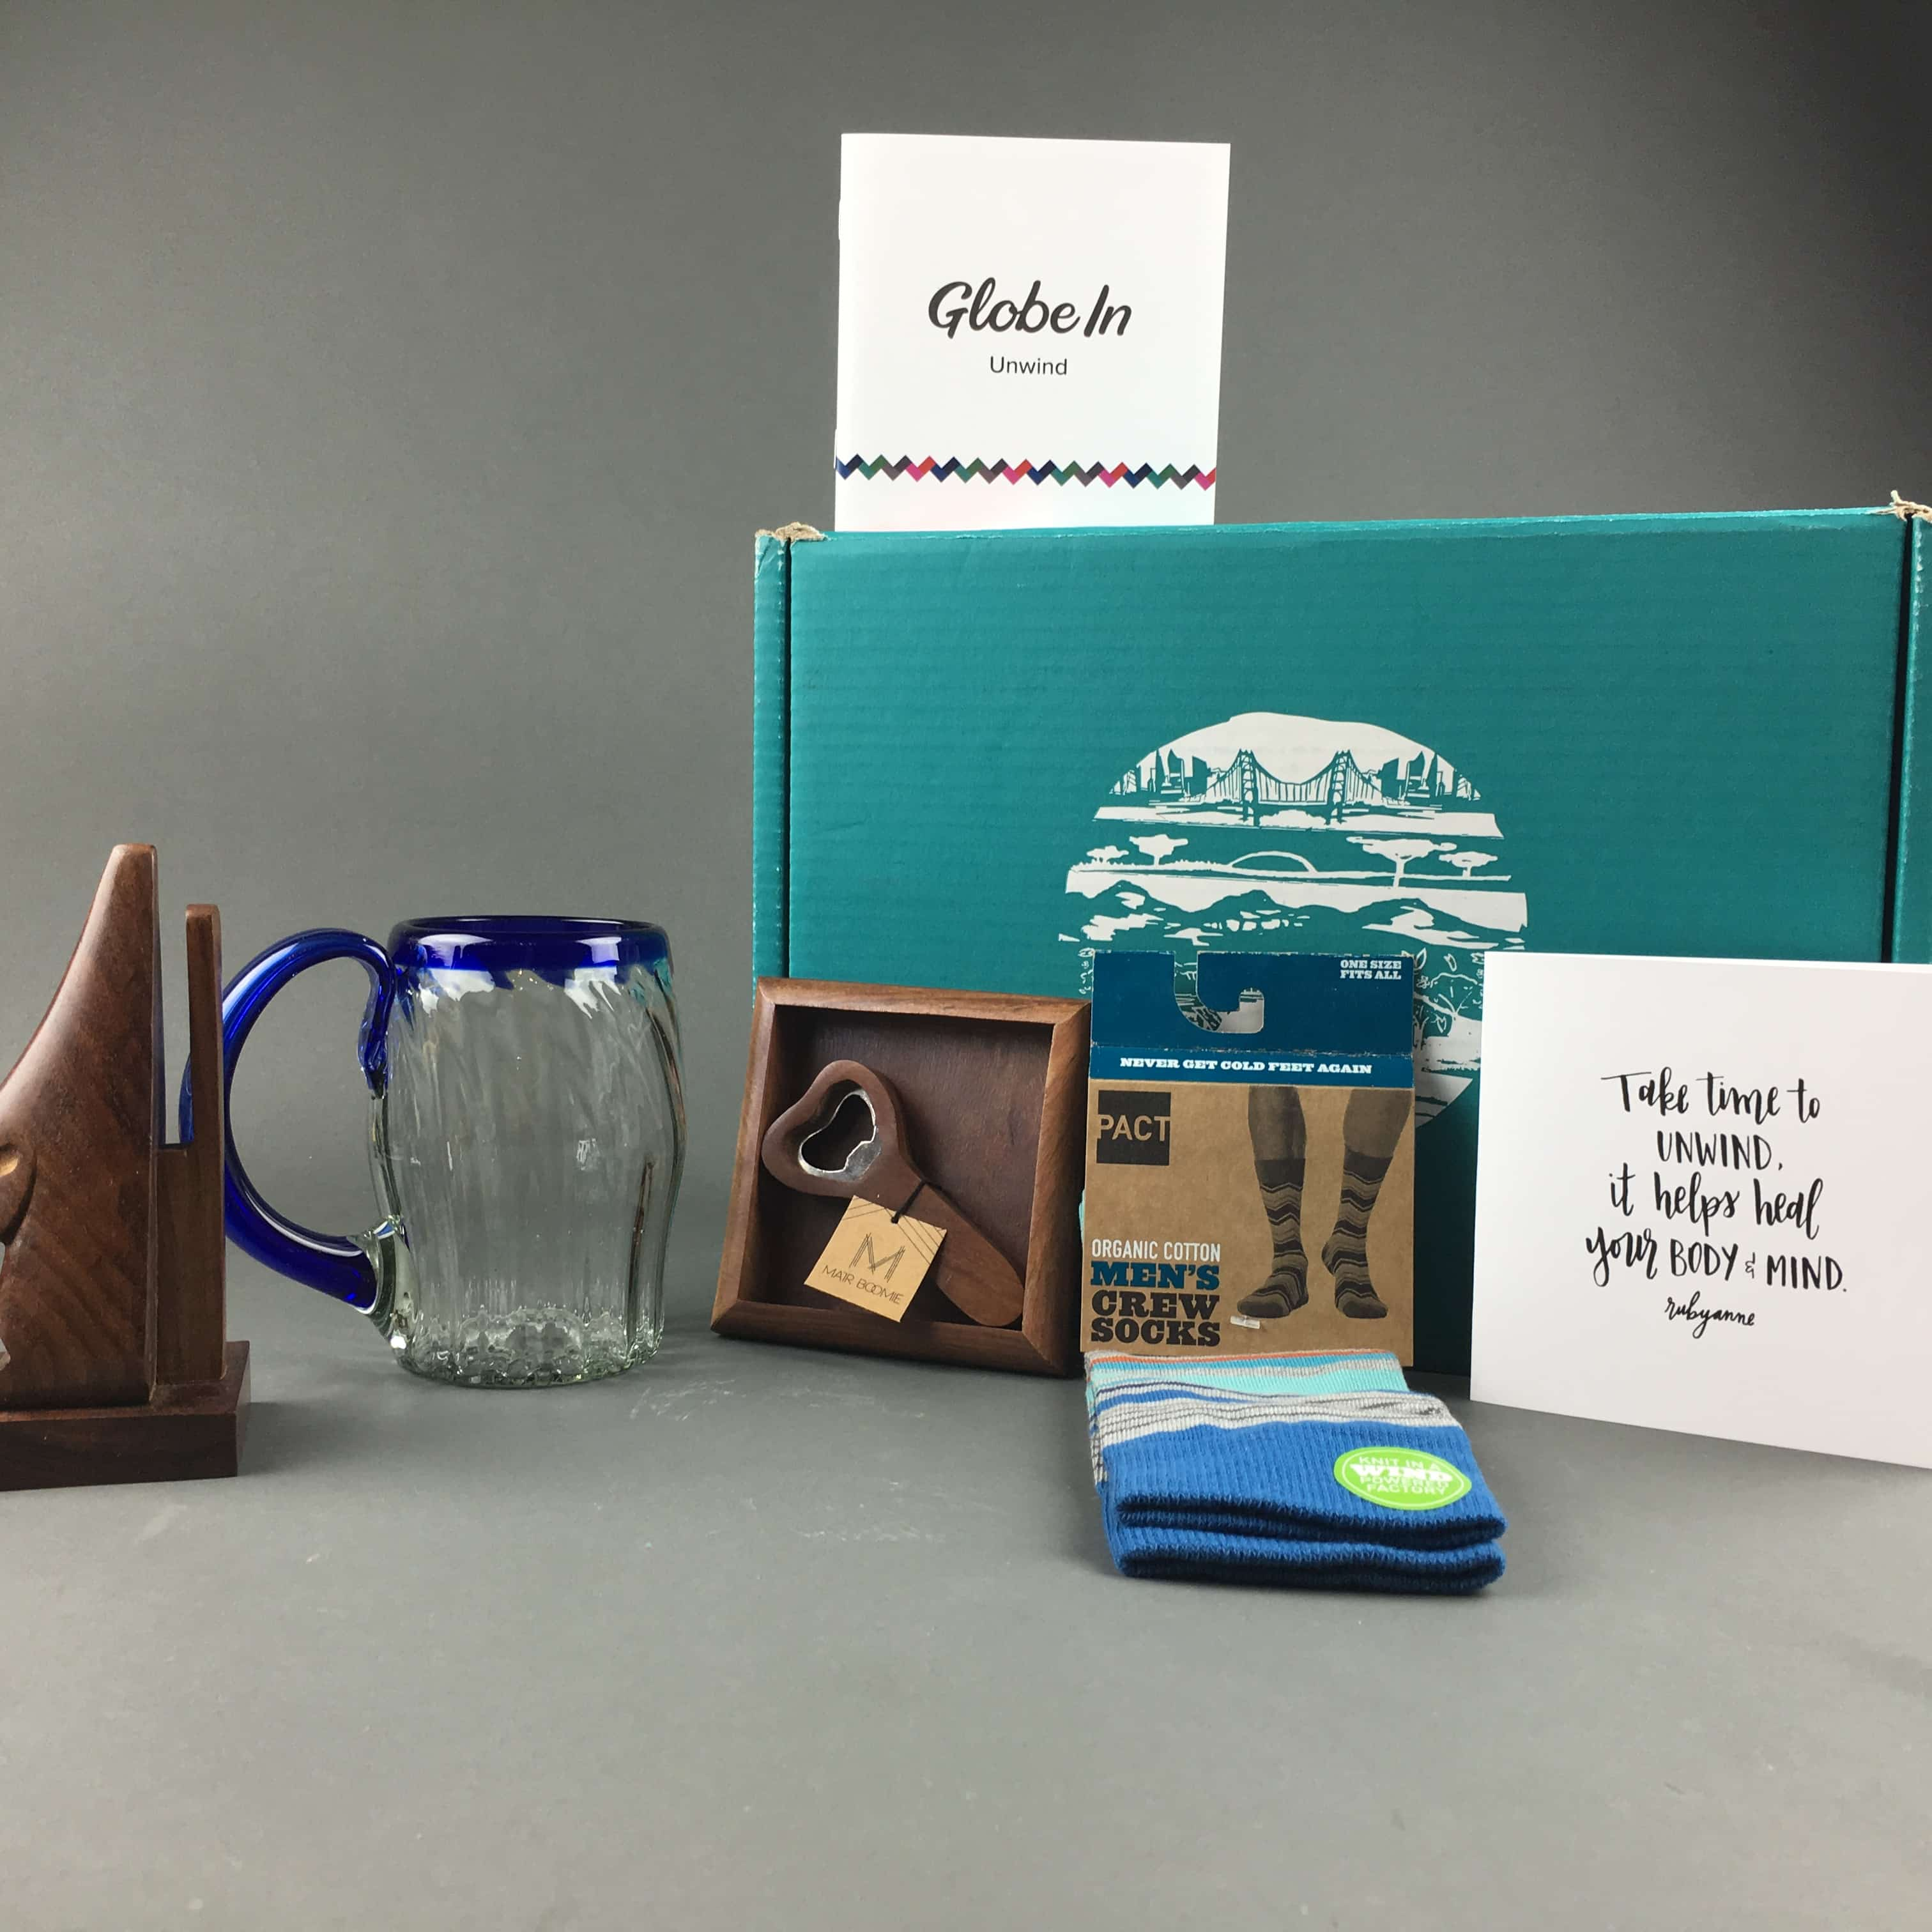 GlobeIn Artisan Box February 2017 Unwind Subscription Box Review + Coupon